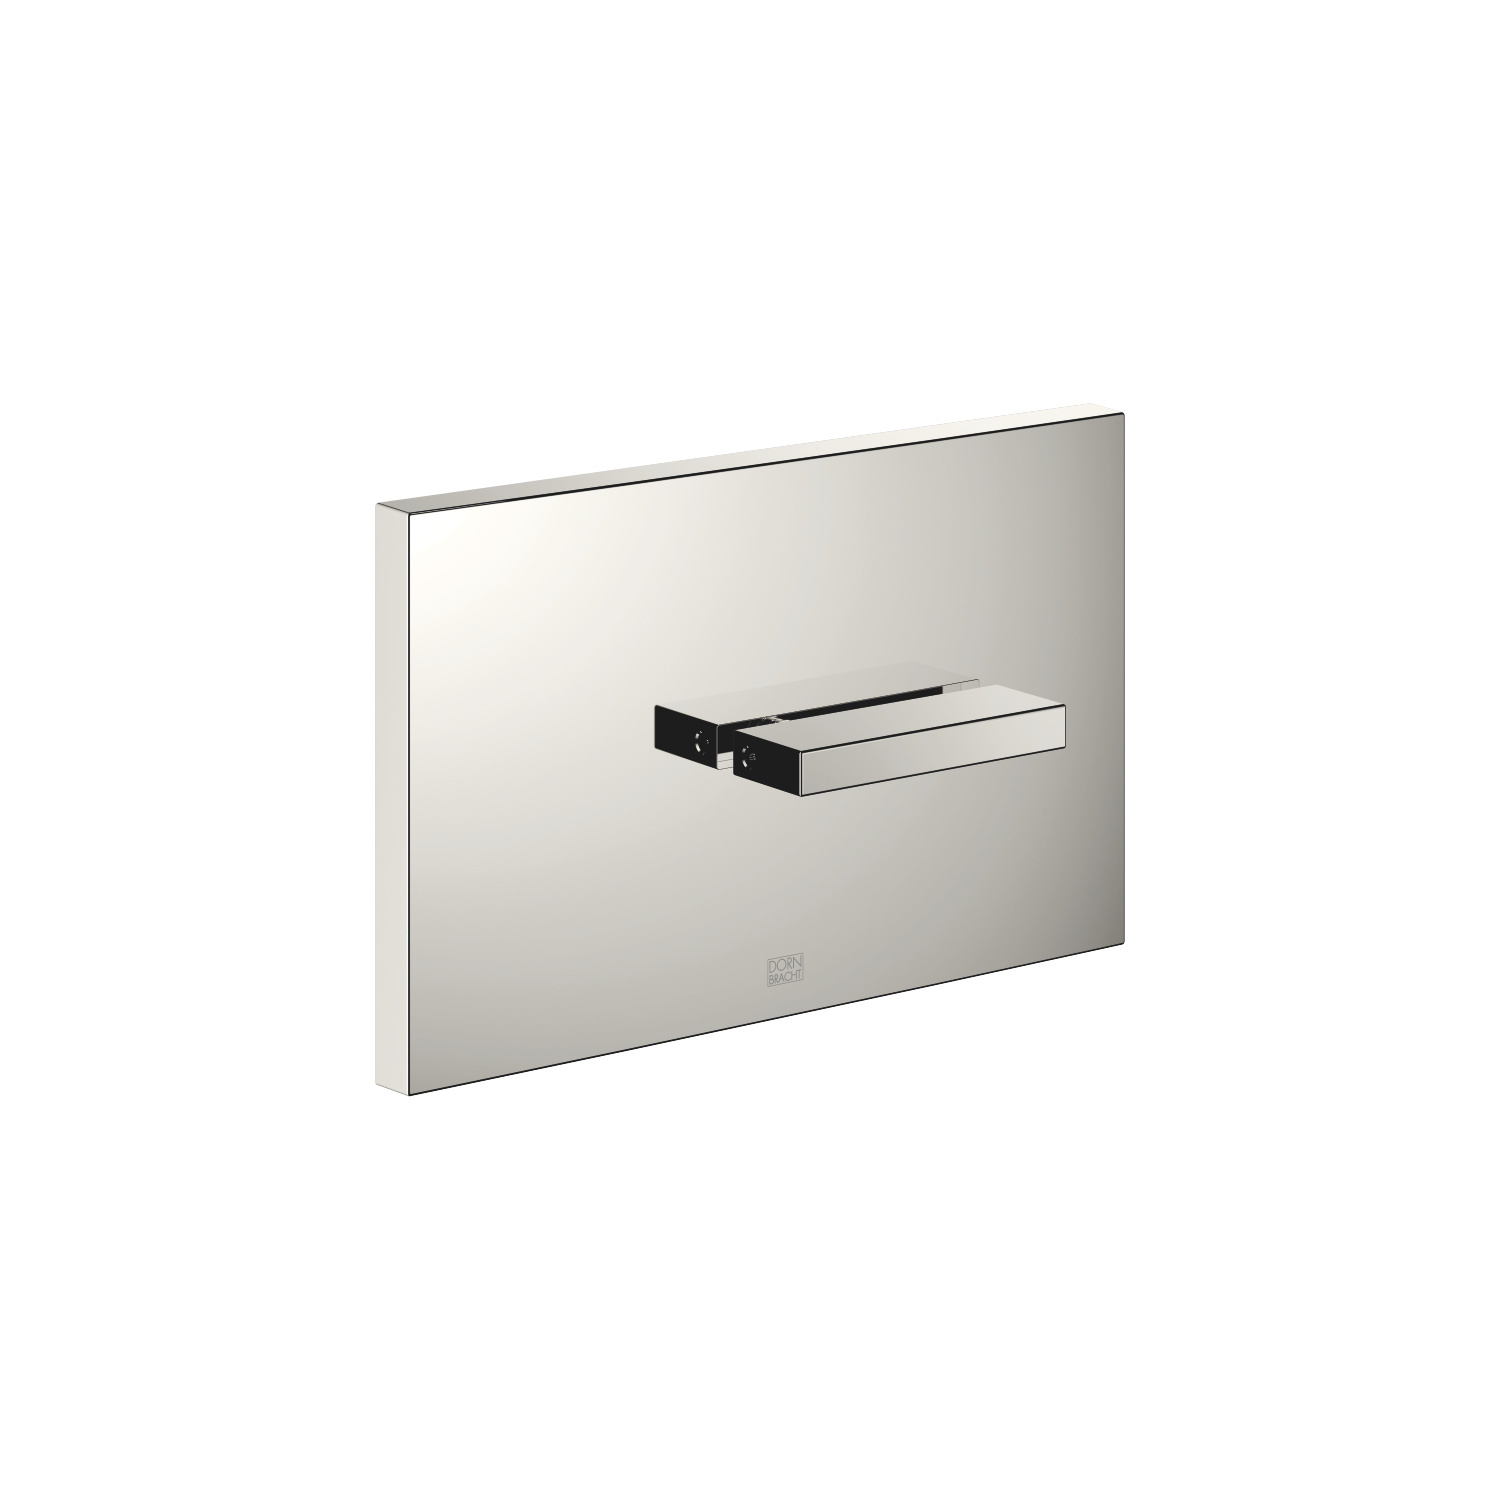 Cover plate for the concealed WC cistern made by TeCe - platinum